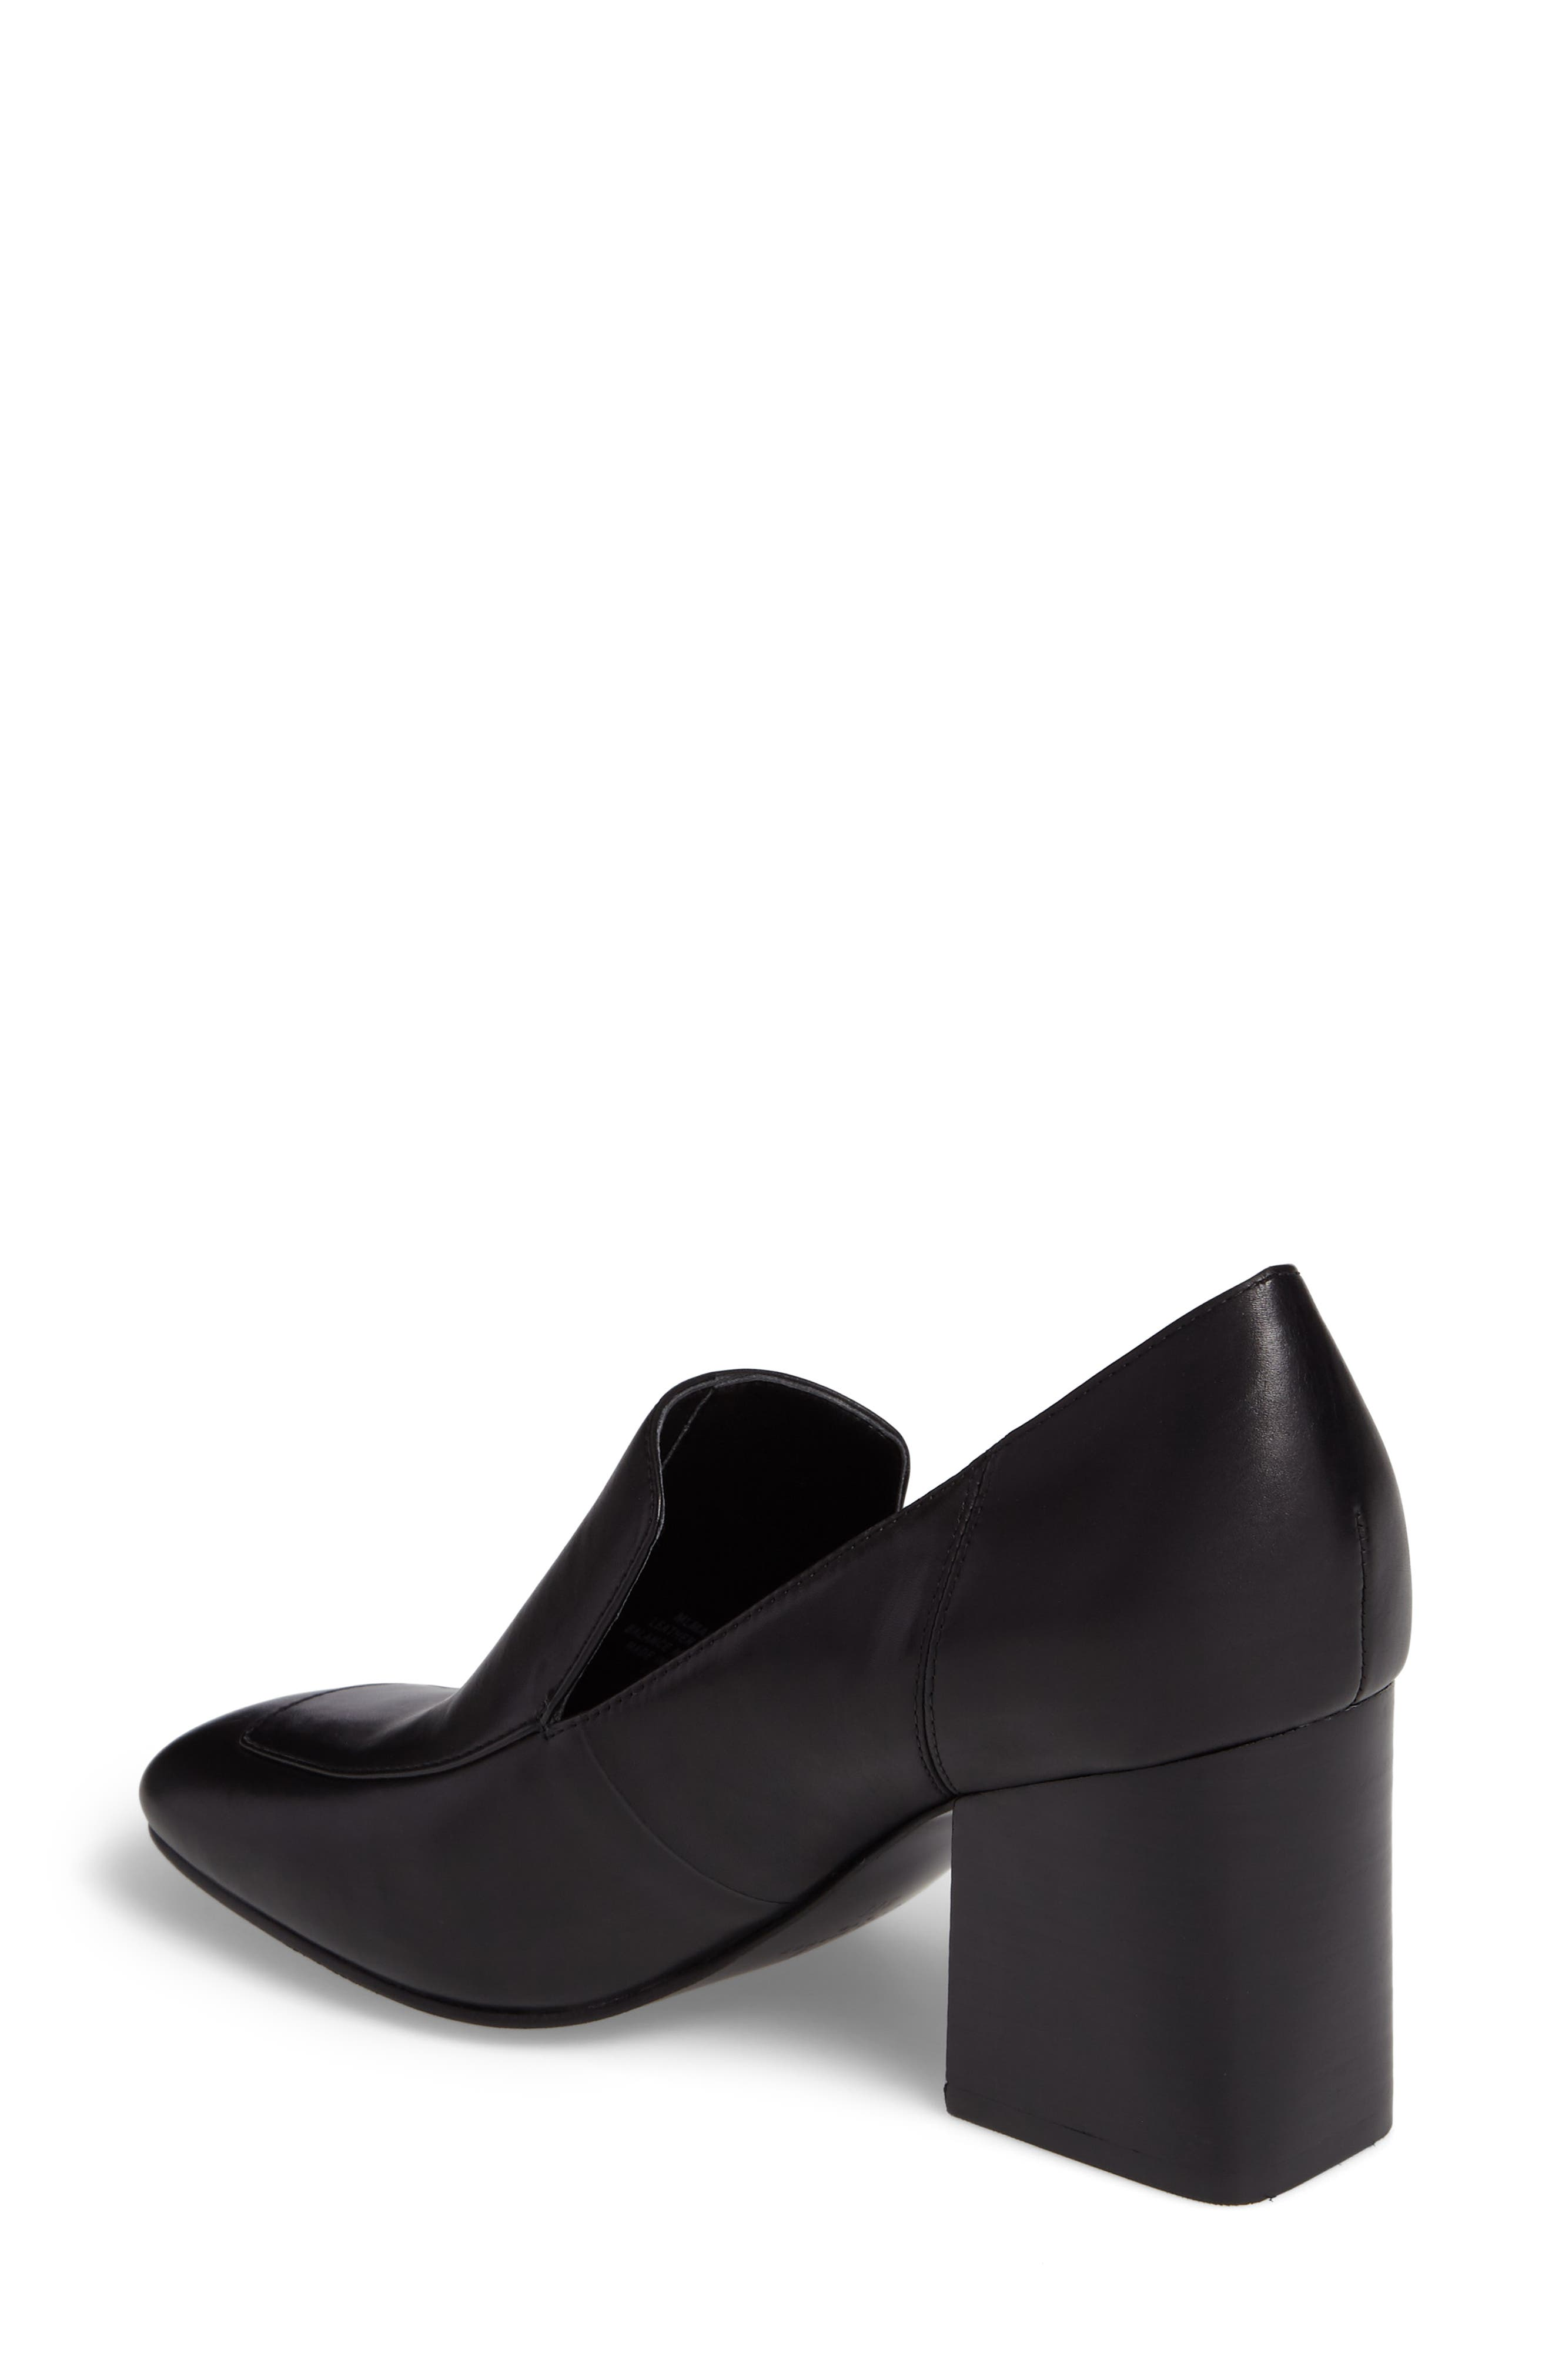 Marlo Loafer Pump,                             Alternate thumbnail 6, color,